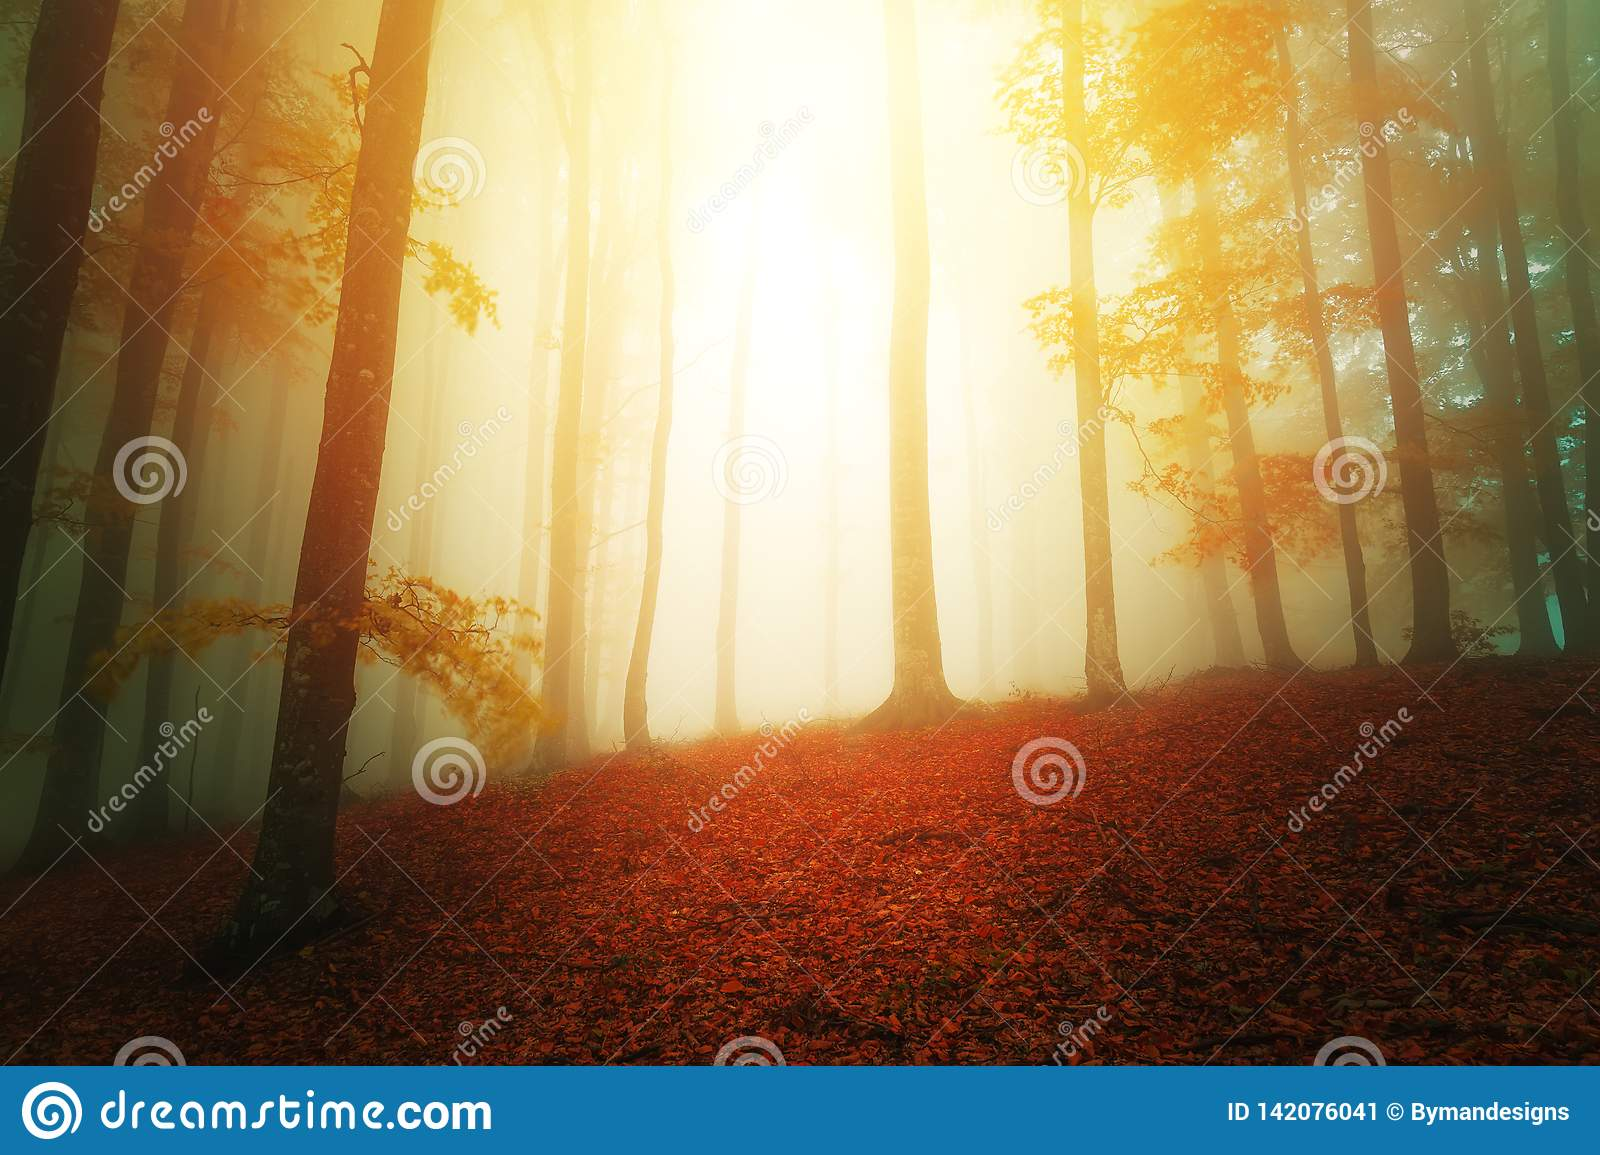 Sun lights in fantasy woods scenery with fog between trees